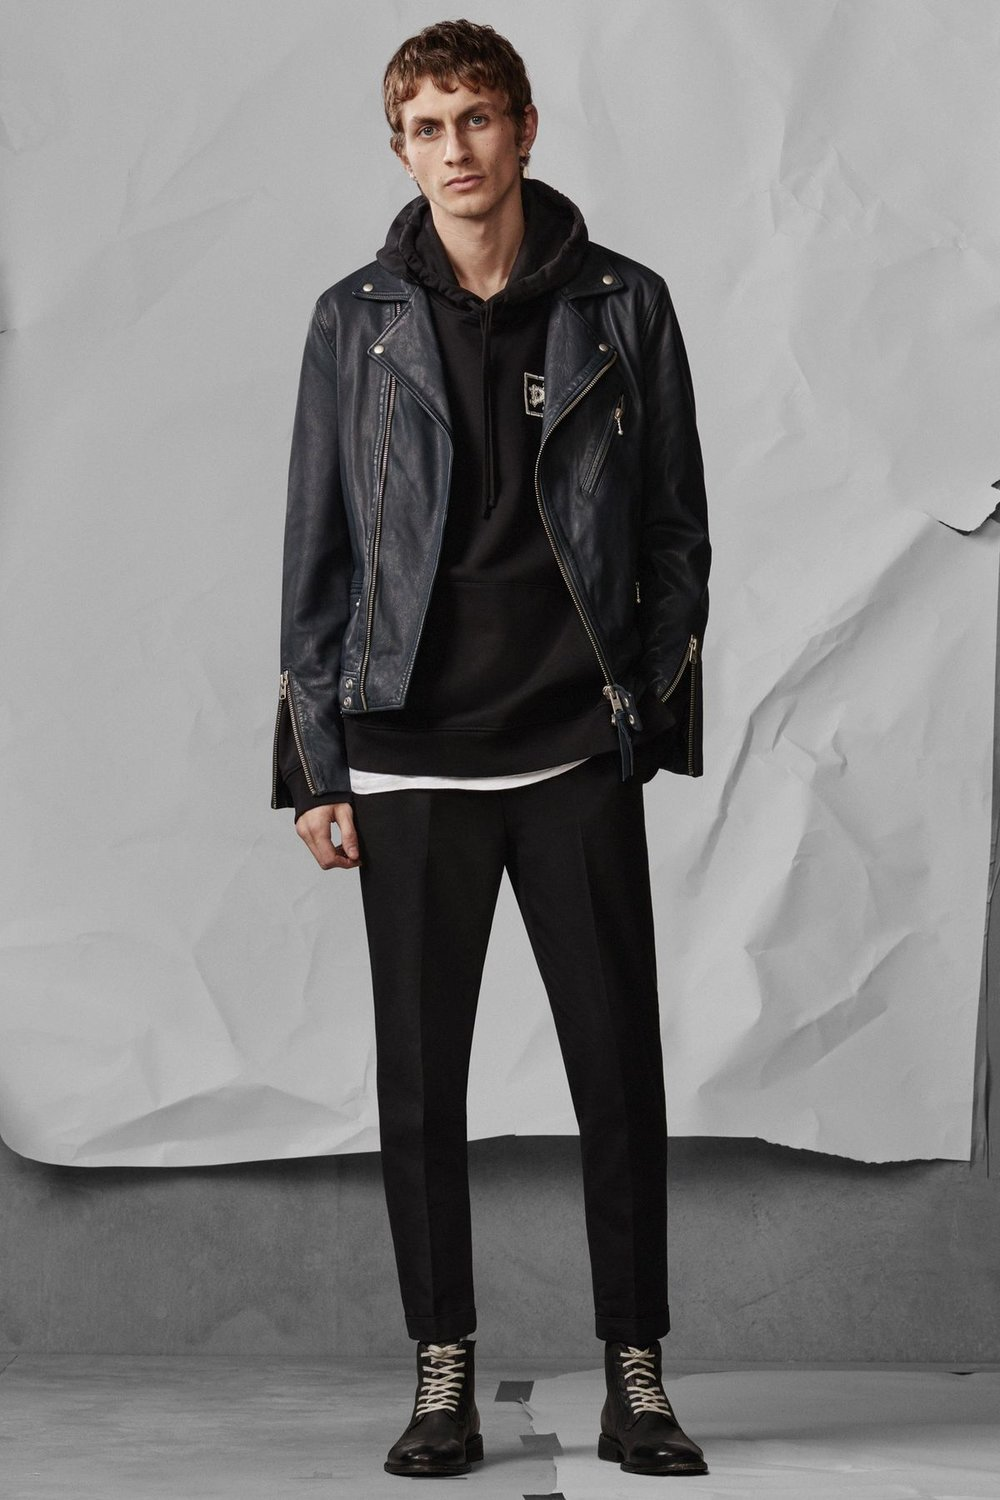 Carver Leather Biker Jacket , £380  Distroy Hoody , £98  Tallis Trouser , £108  Leven Boot , £168